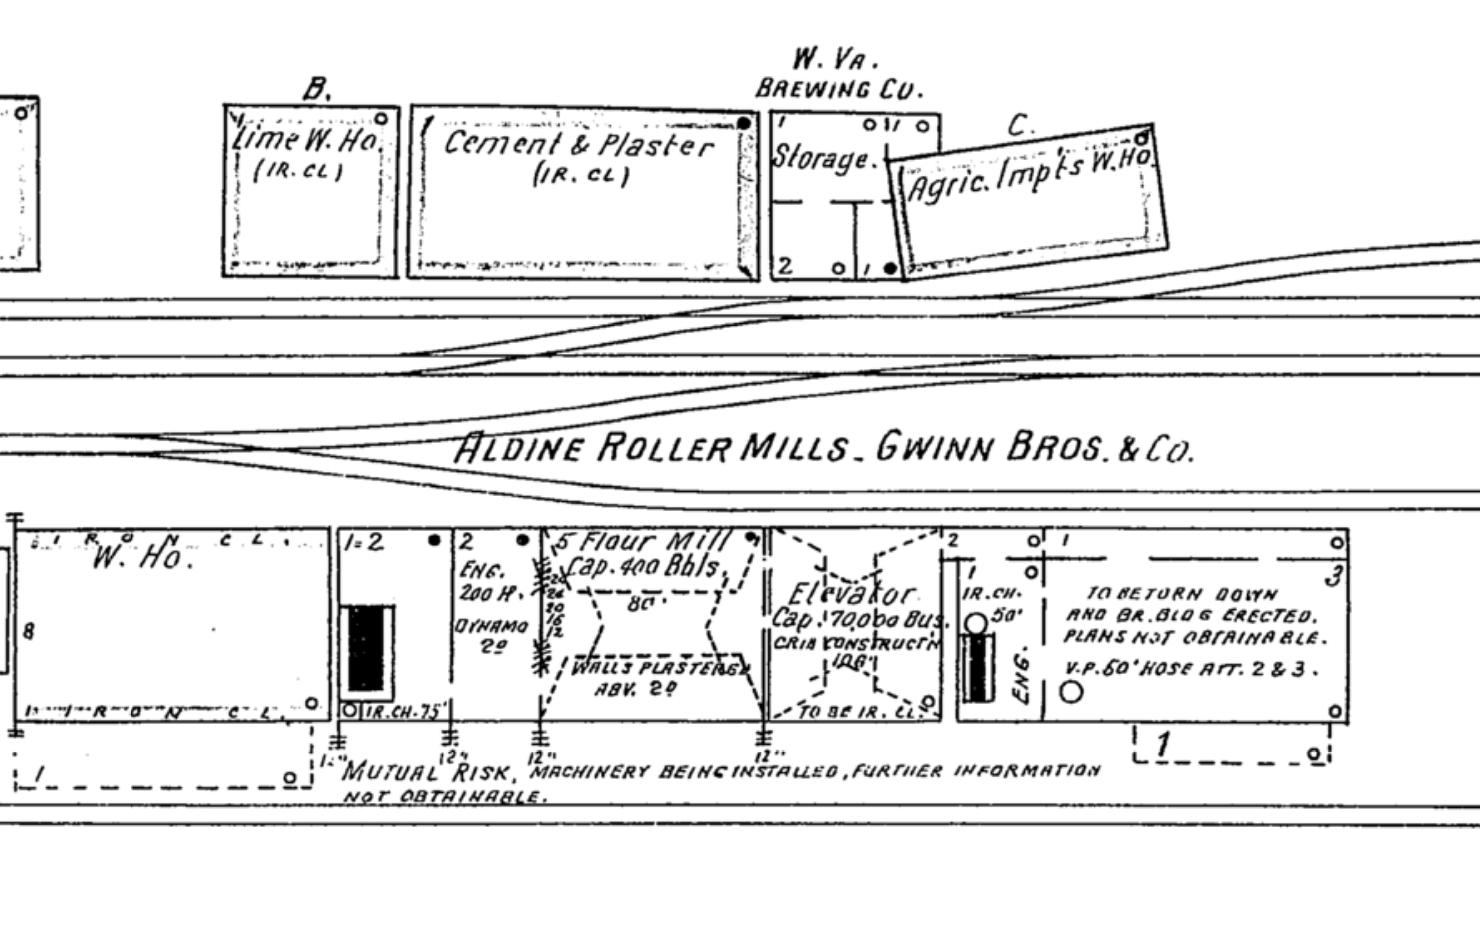 Sketch of the Gwinn Bros. Mill from the 1904 Sanborn fire maps